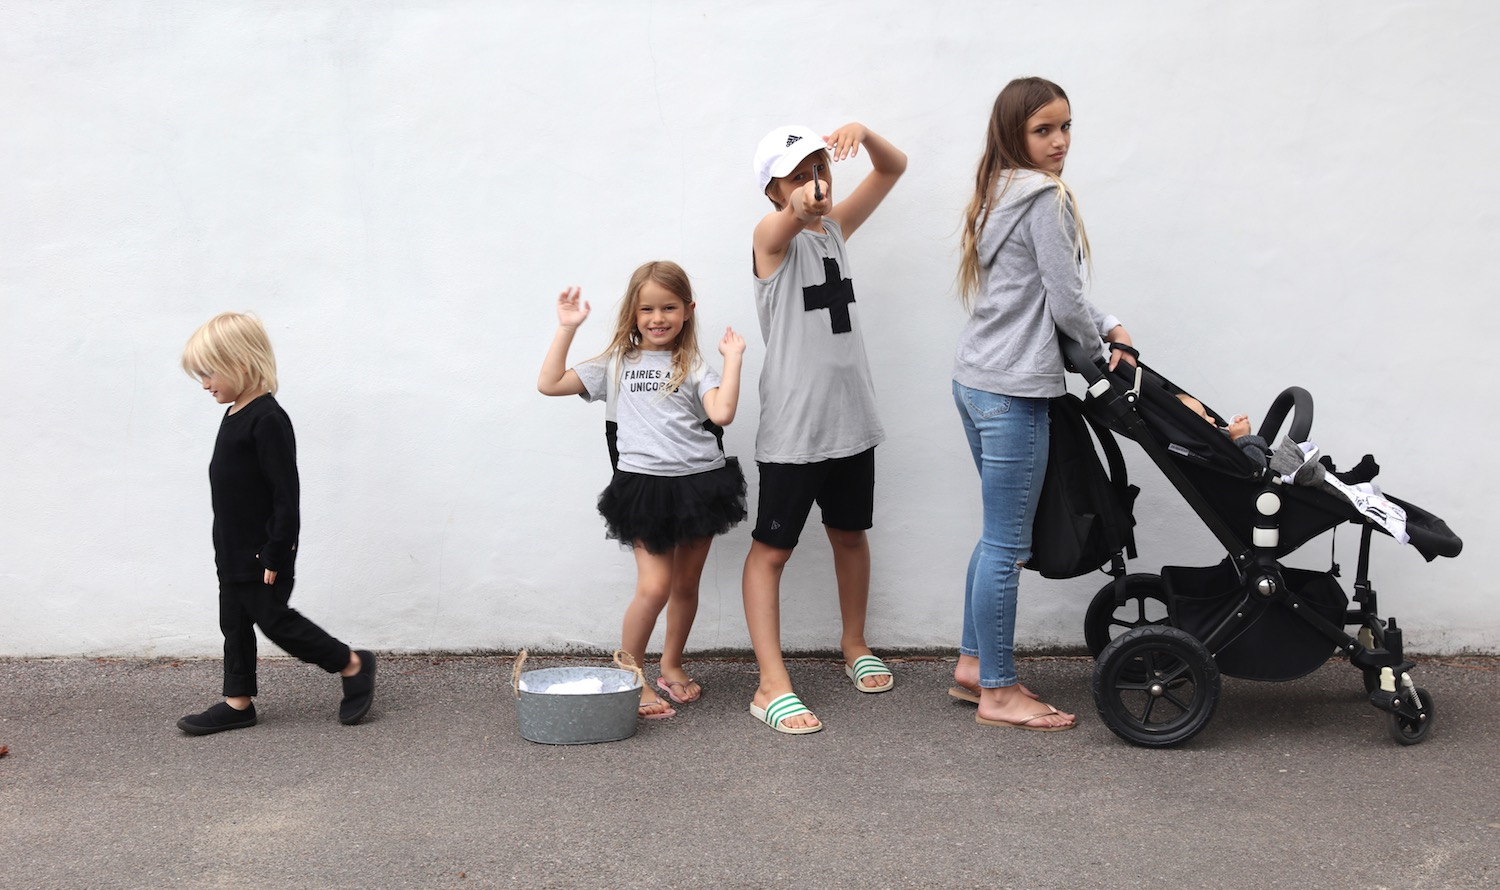 chloeuberkid_kids_fashion_family_bugaboo